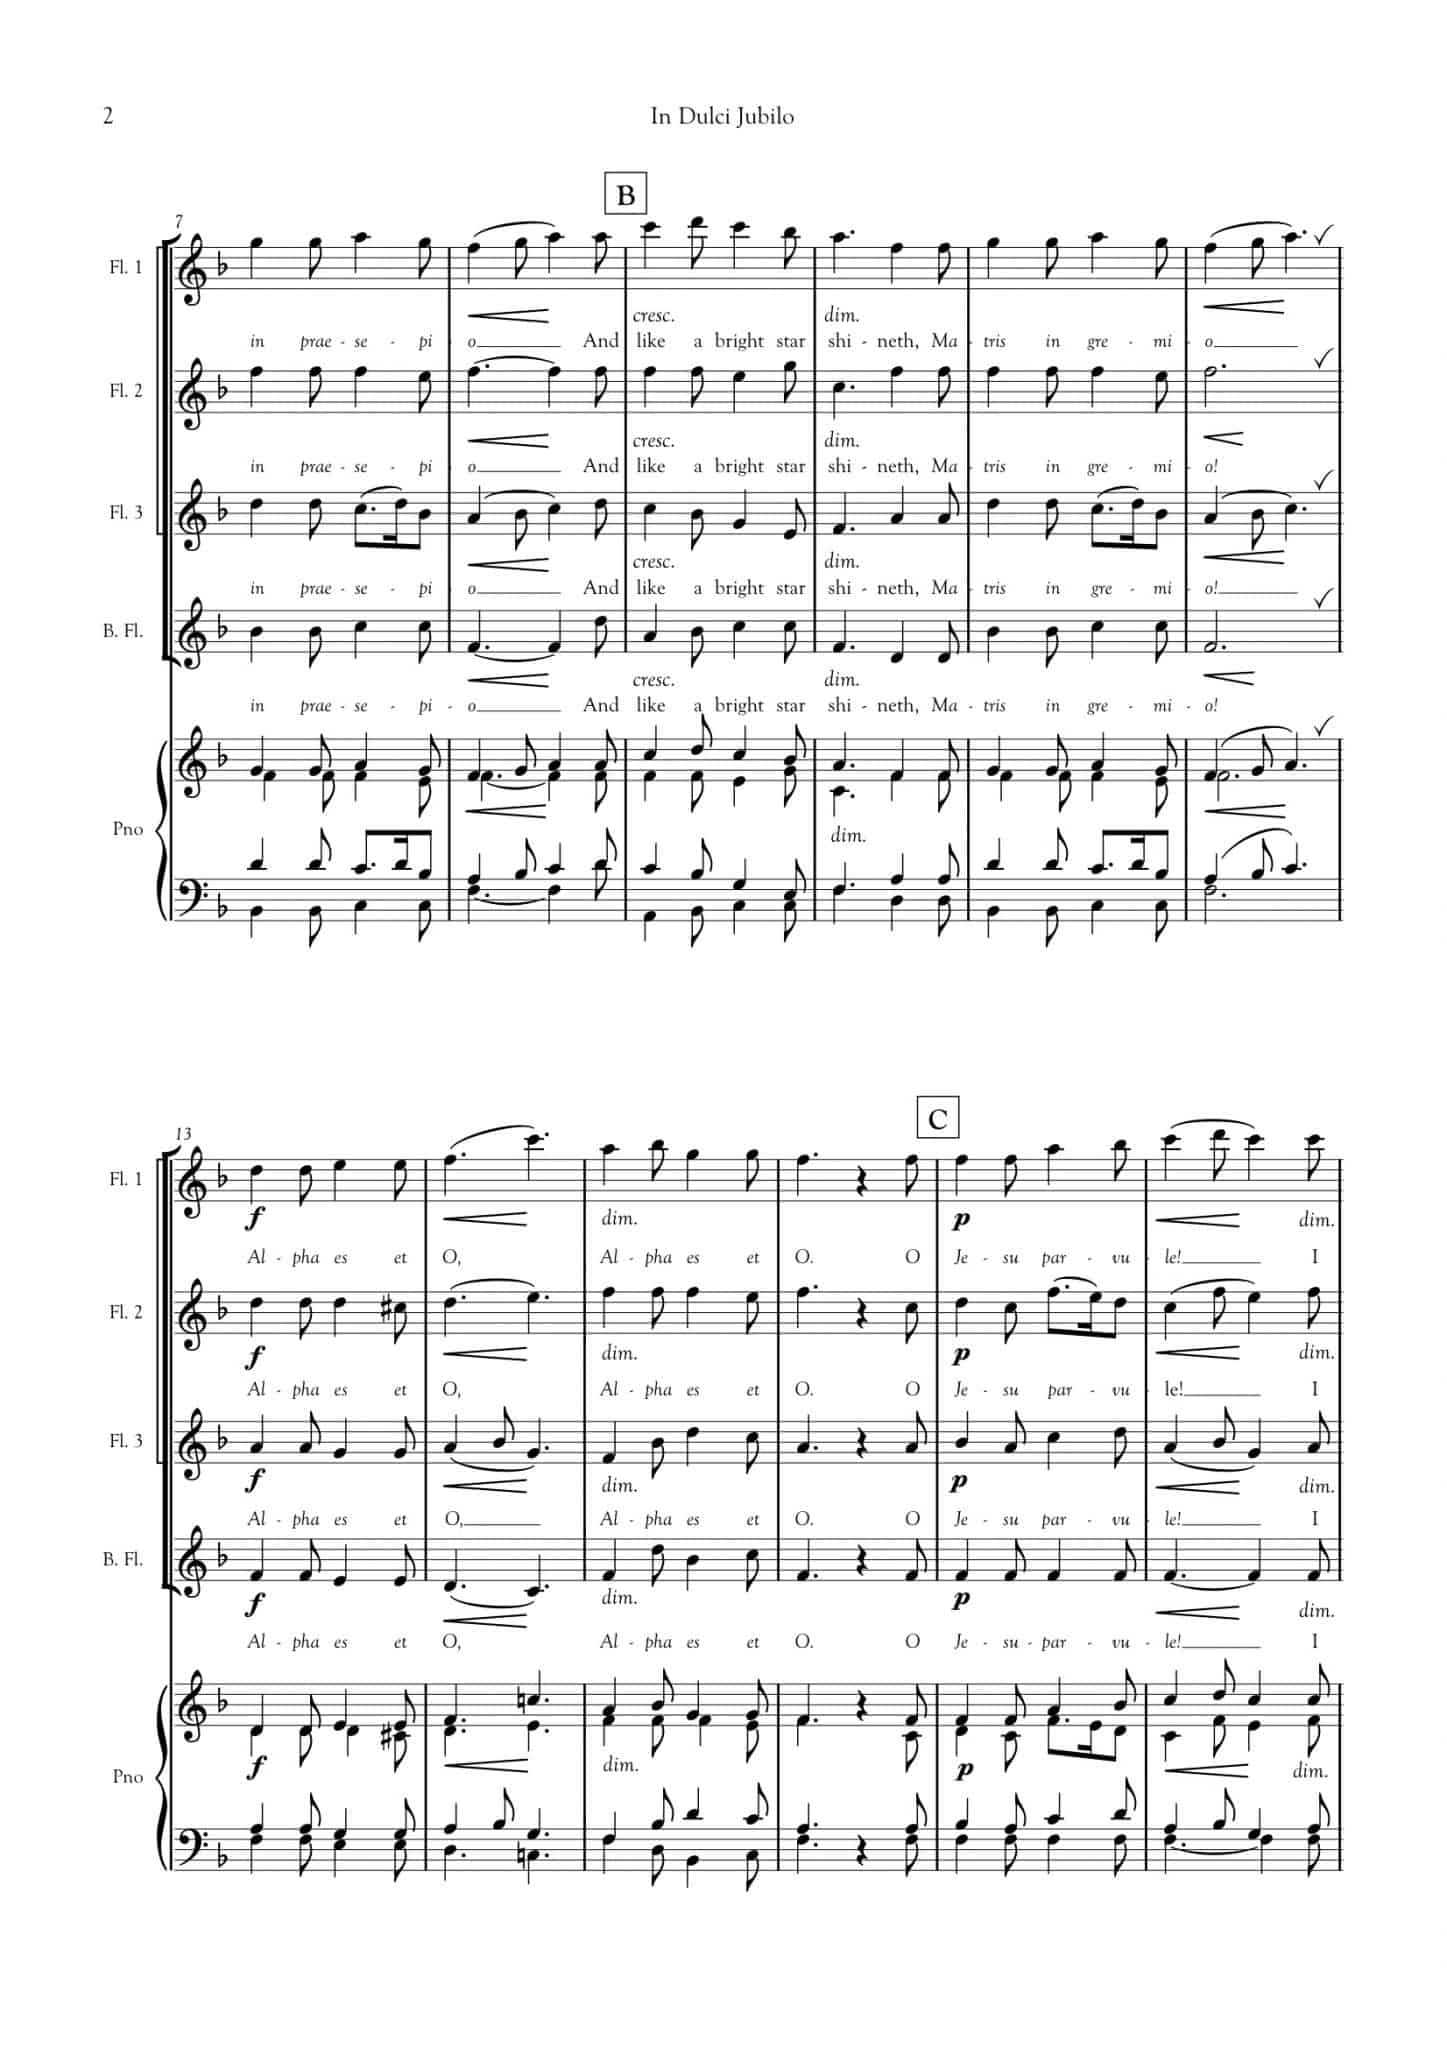 Simply Flute - In Dulci Jubilo - all parts_title sheet_no words copy_Part11